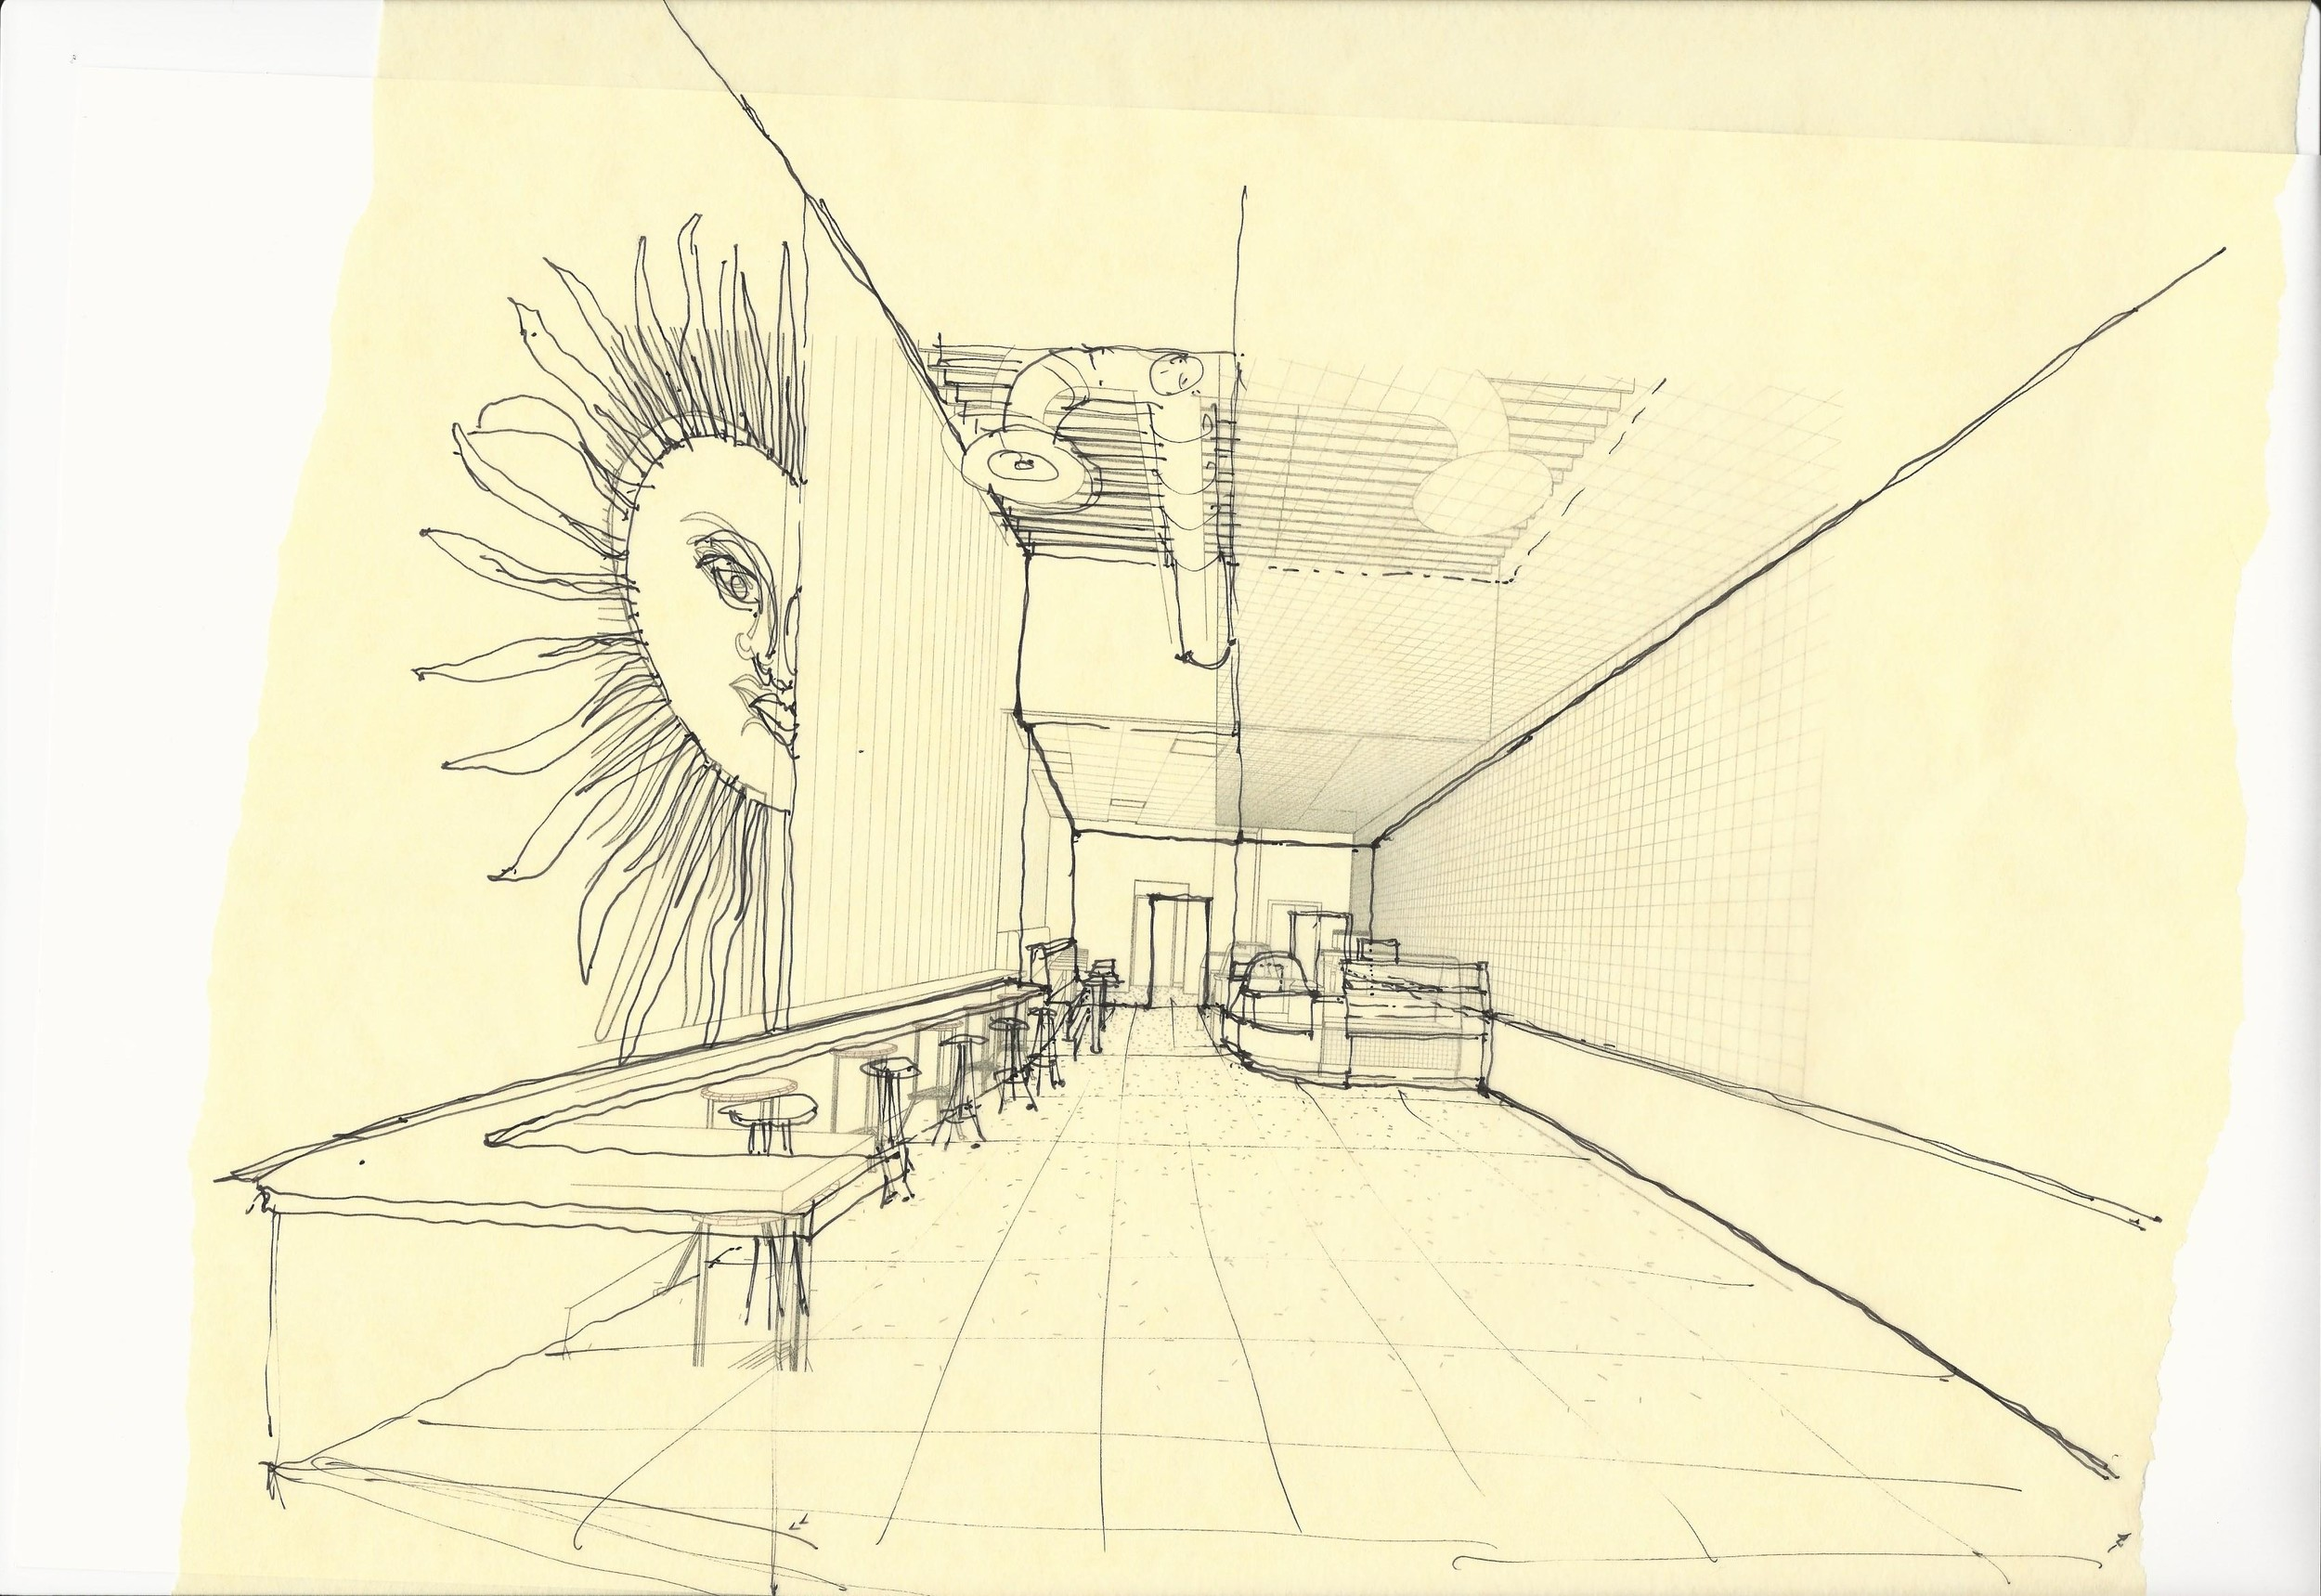 Early sketch of view when entering cafe